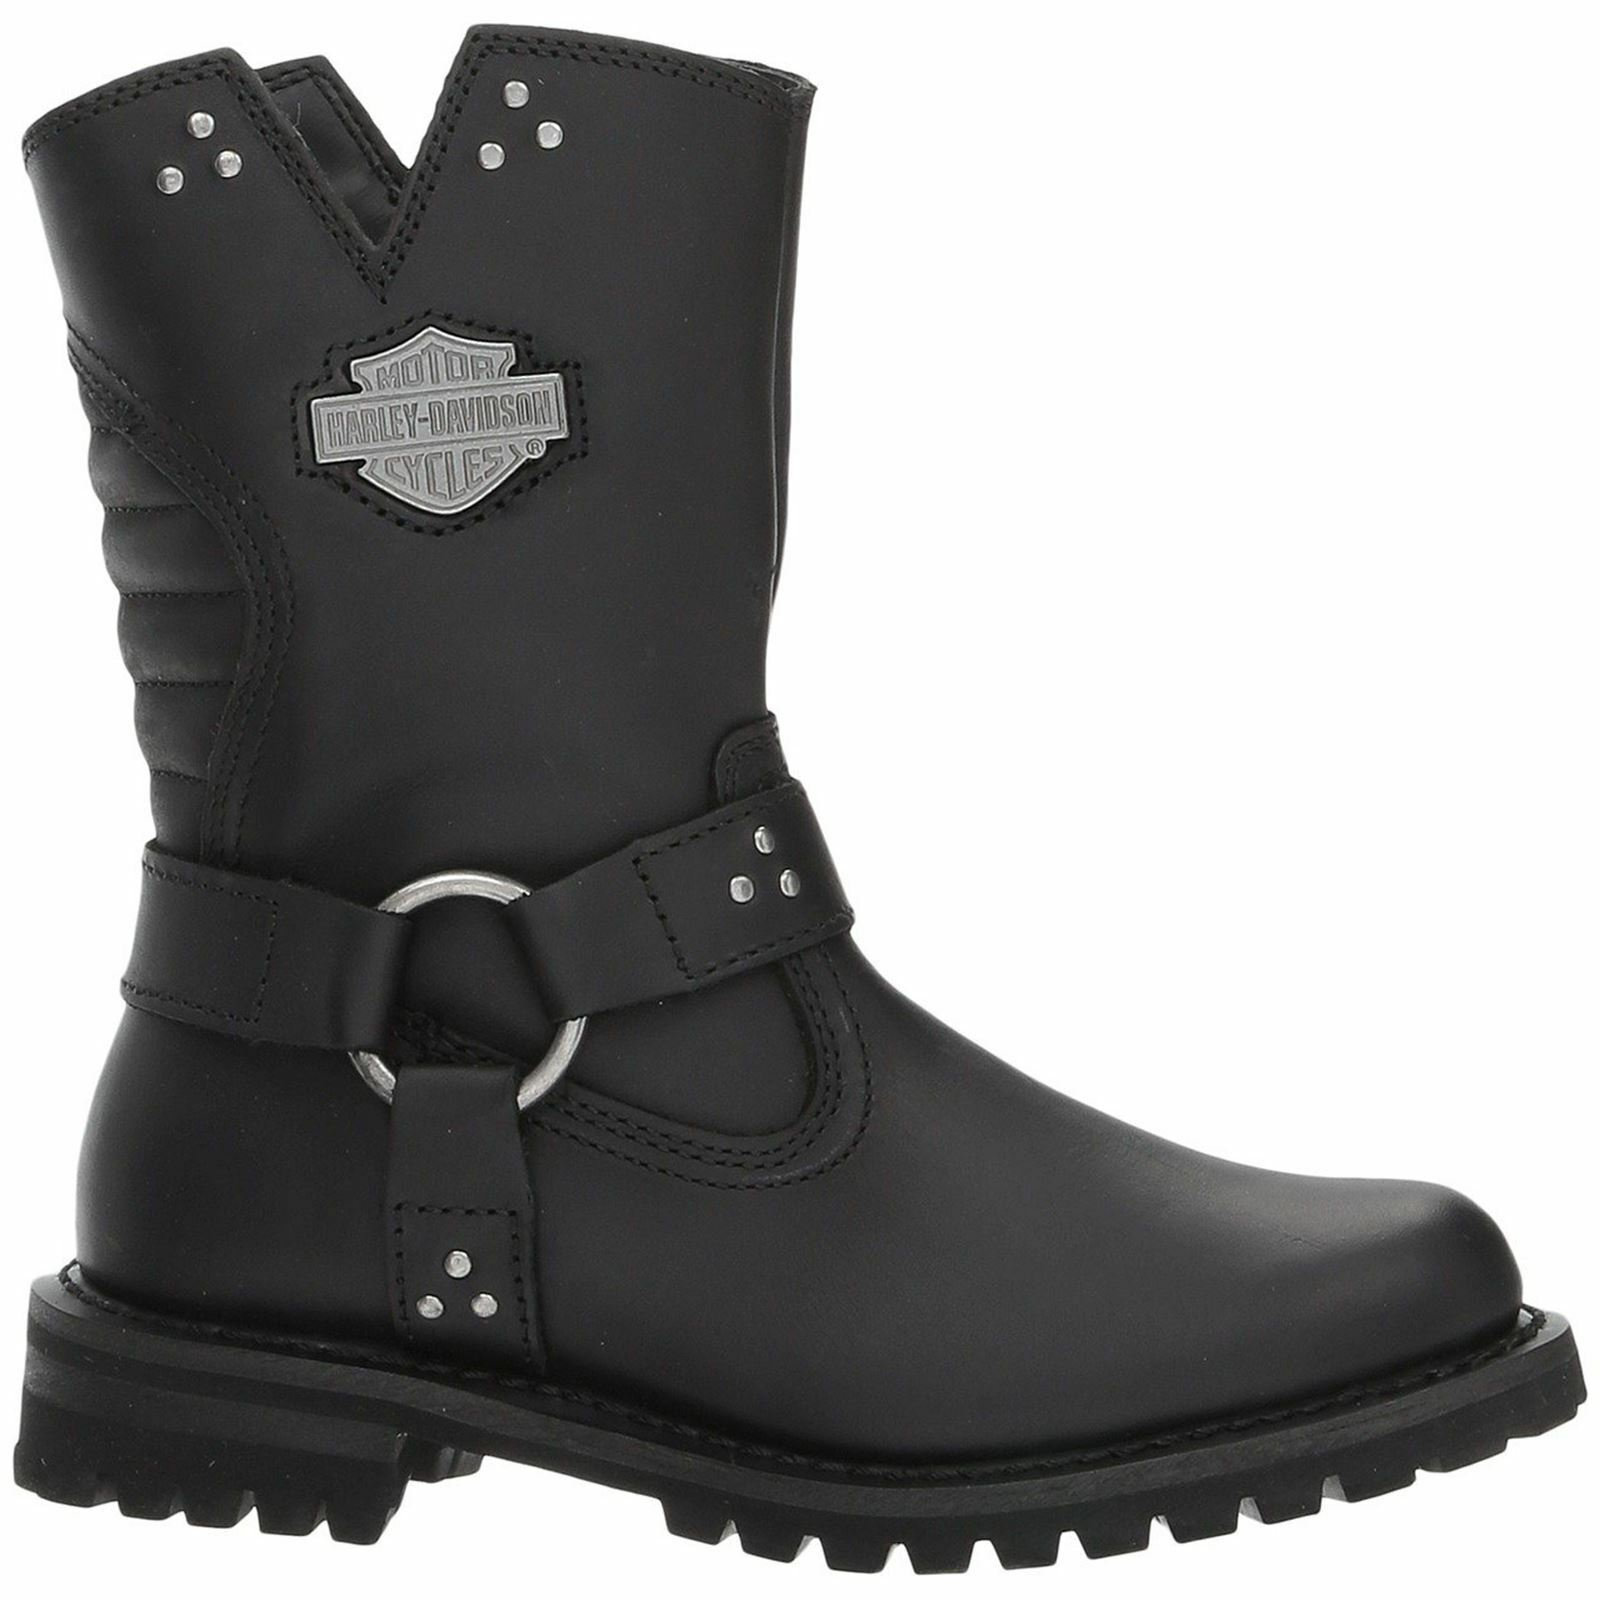 Grandes zapatos con descuento Harley Davidson Barford Black Womens Leather Zip-up Riding Biker Boots